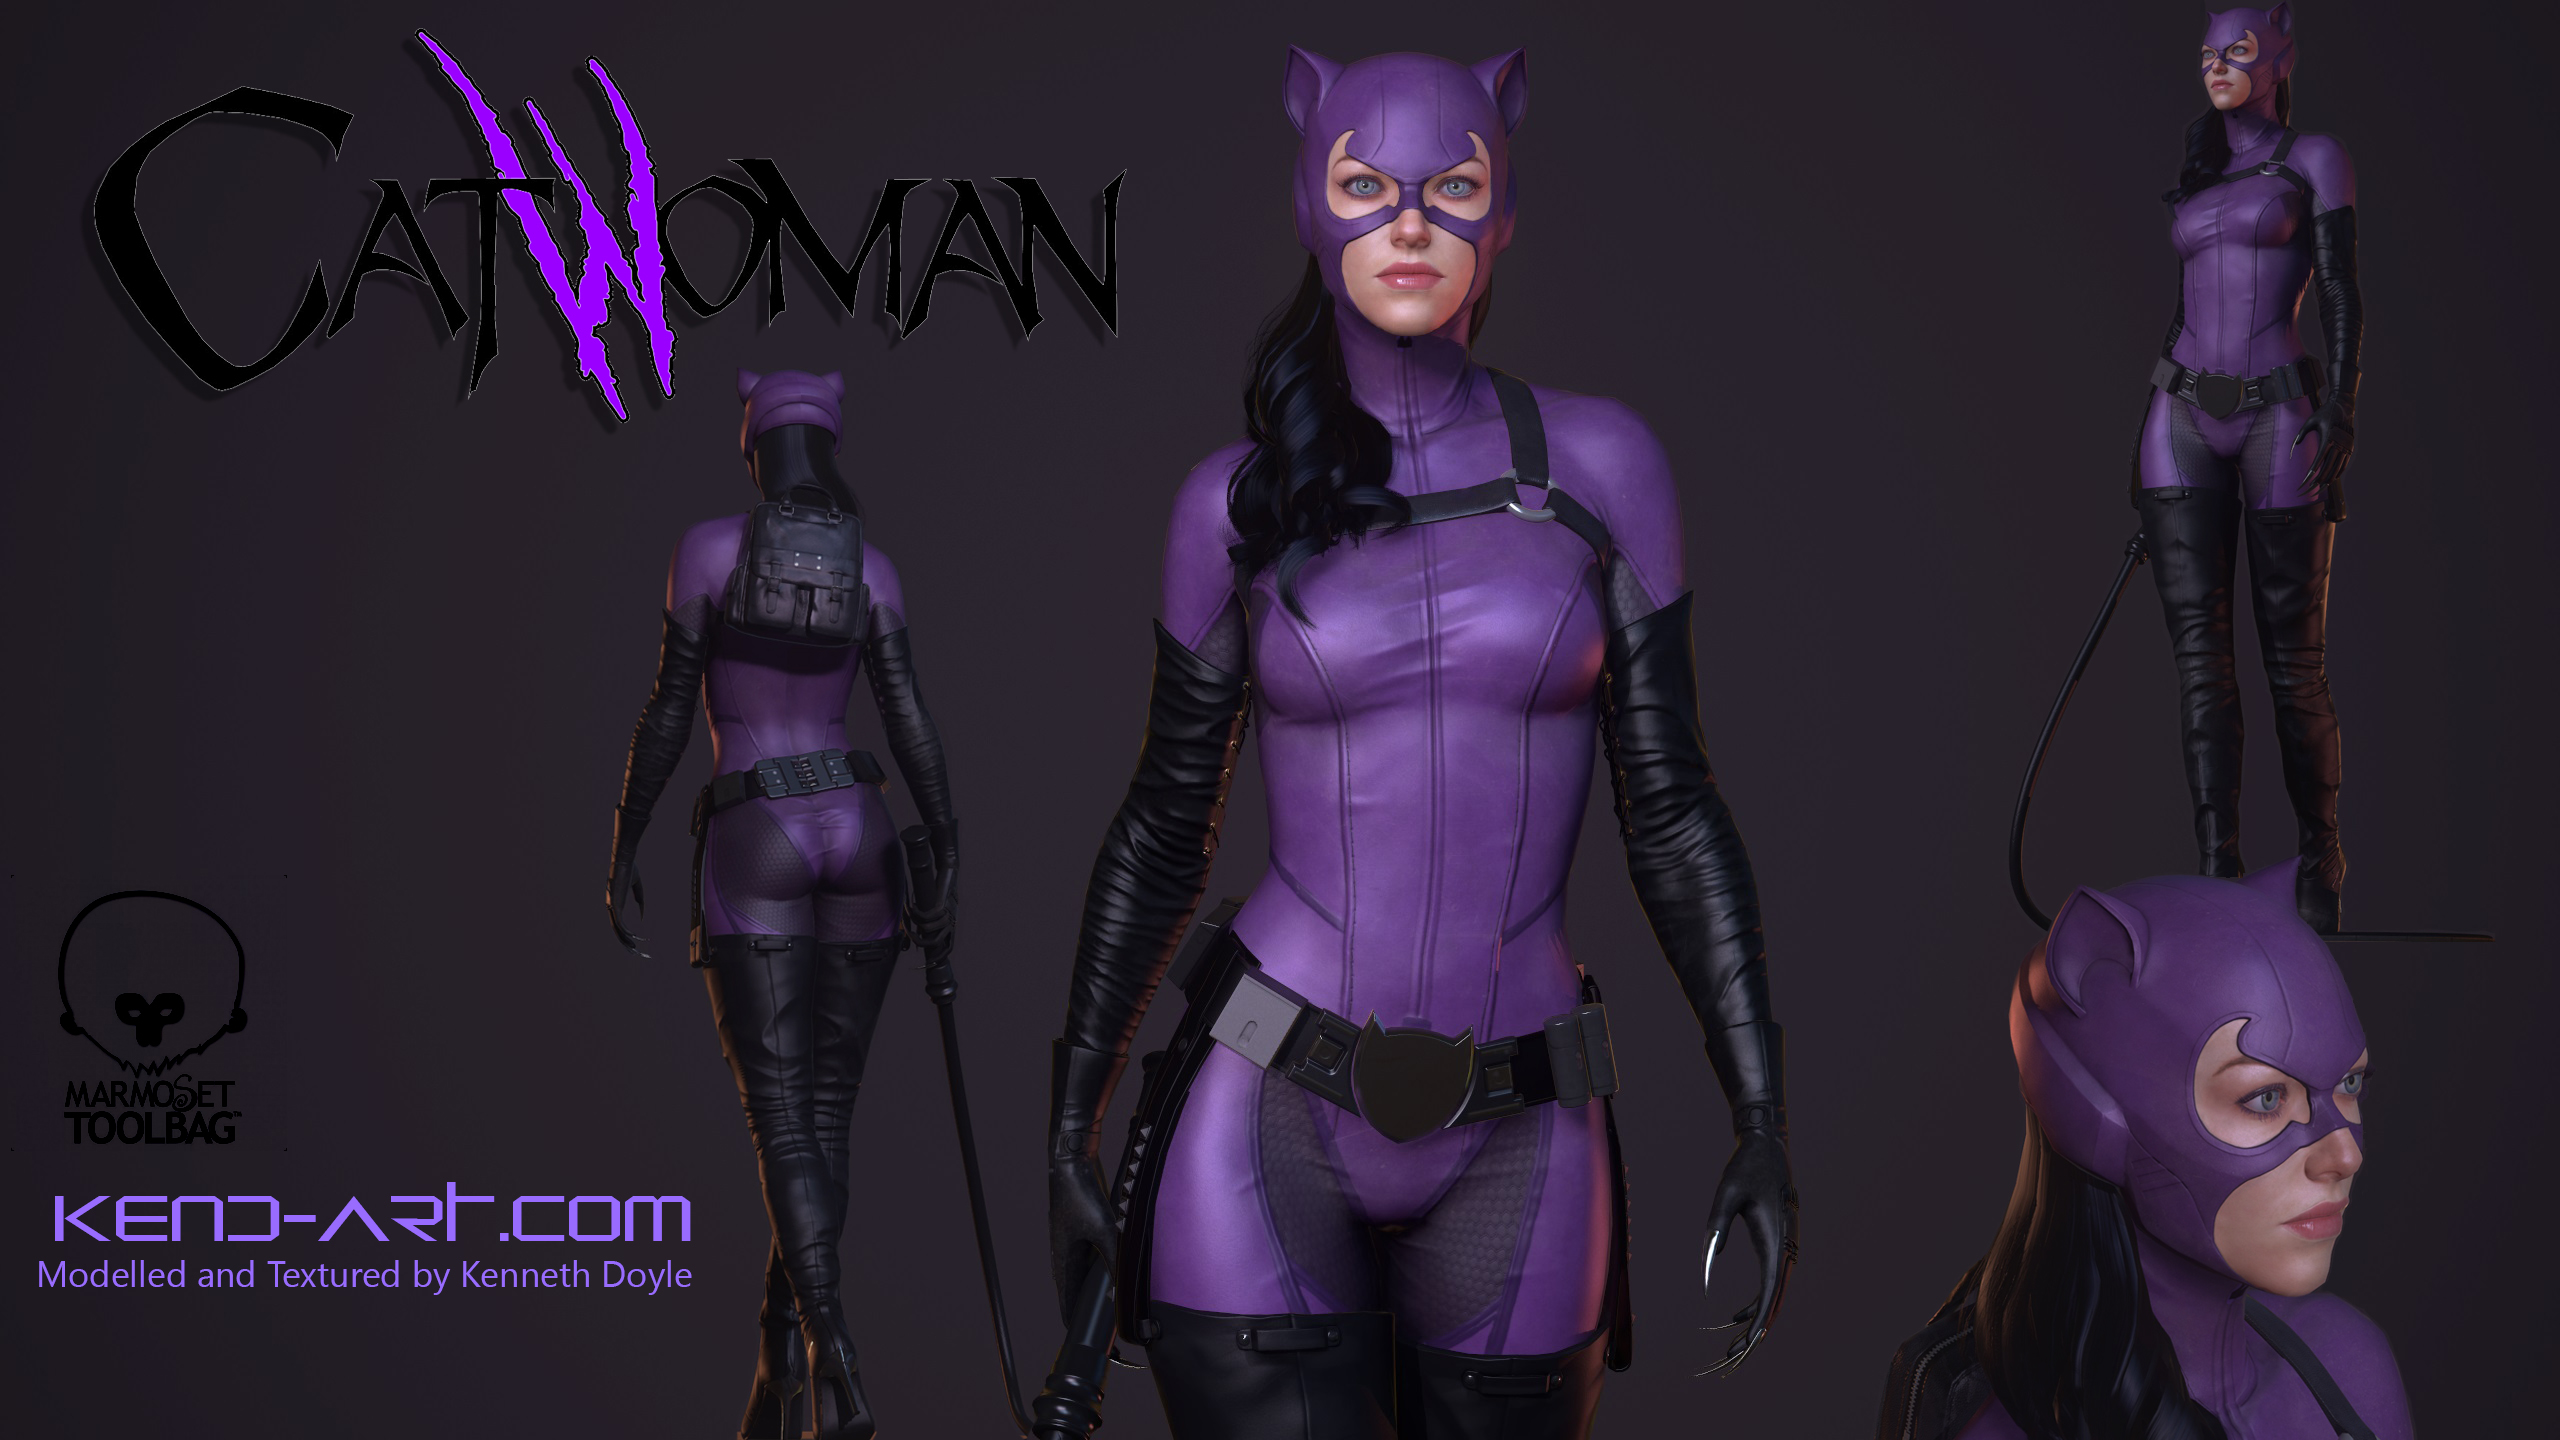 catwoman_by_kdoyle9-d7vp4uo.jpg